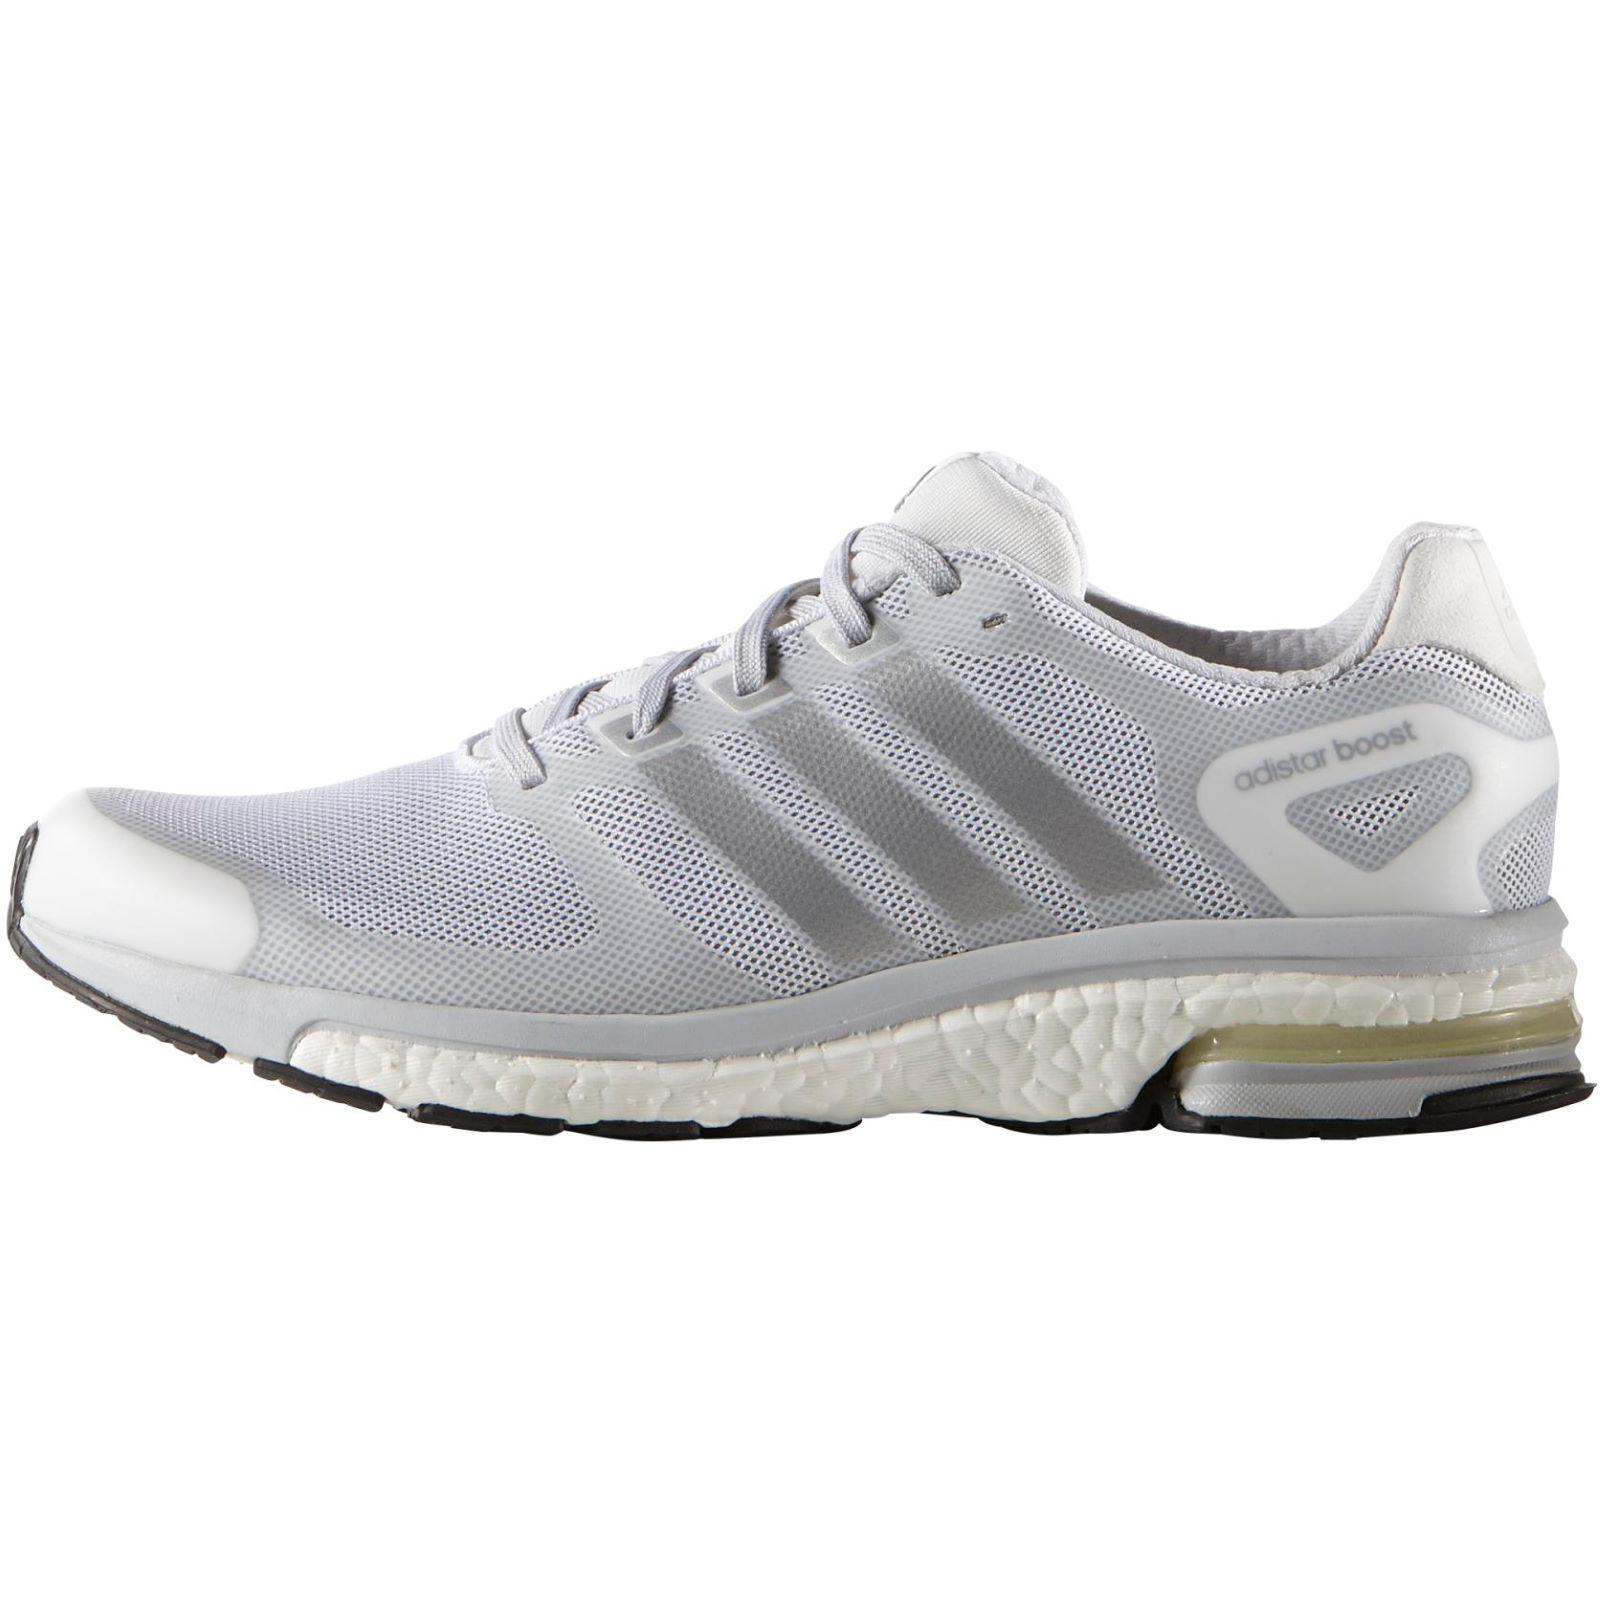 Adidas Boost W Running Shoes